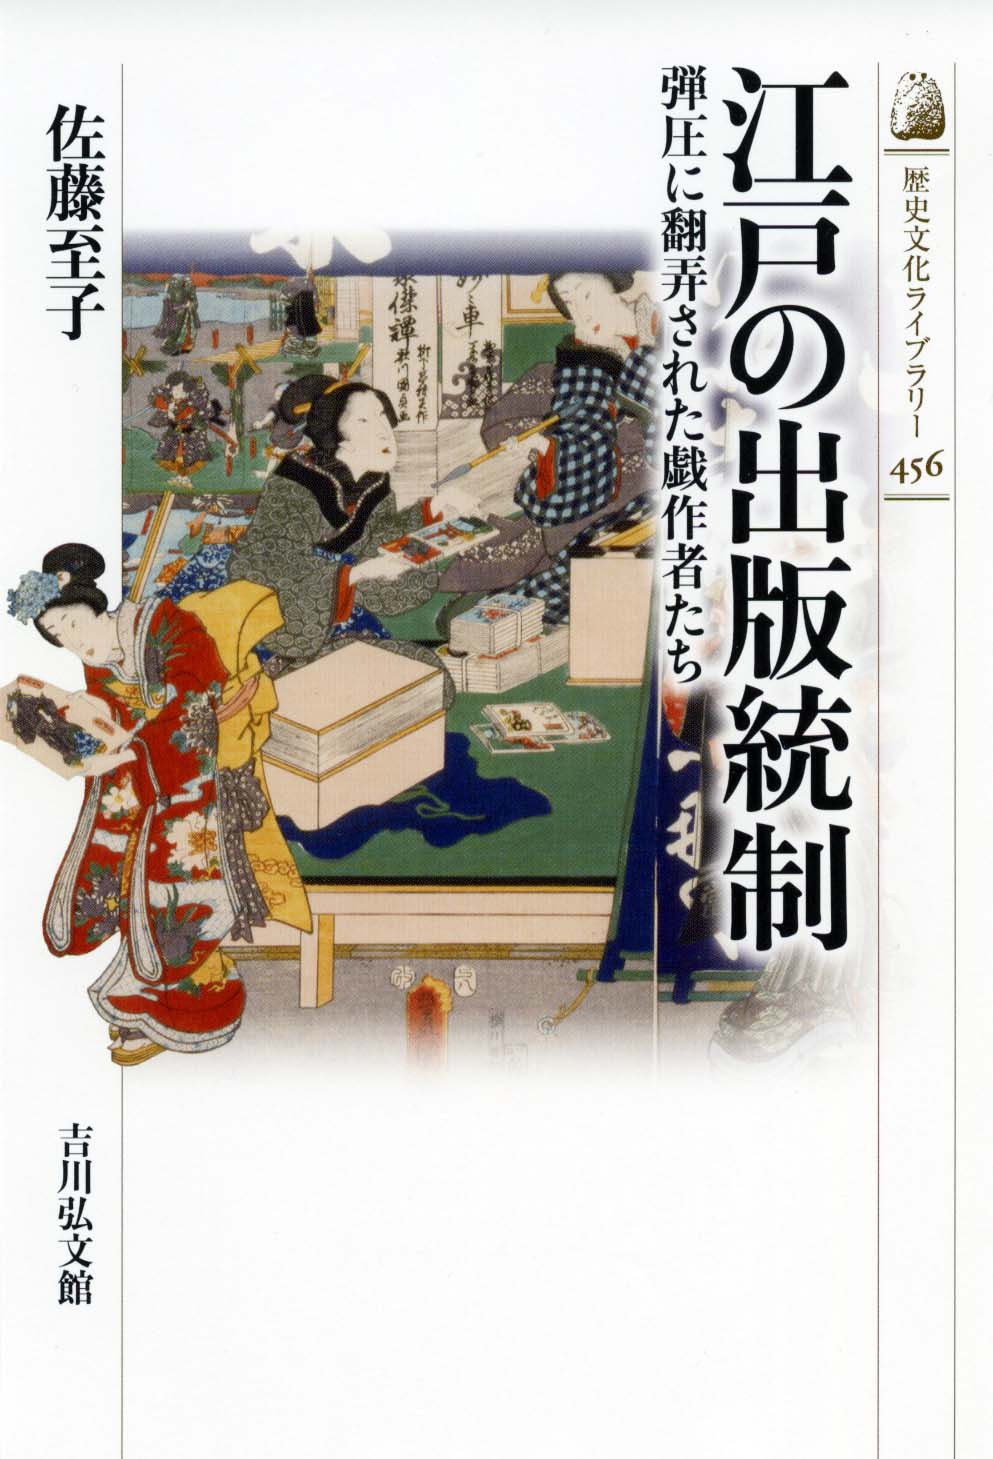 A white cover with an illustration of Edo era